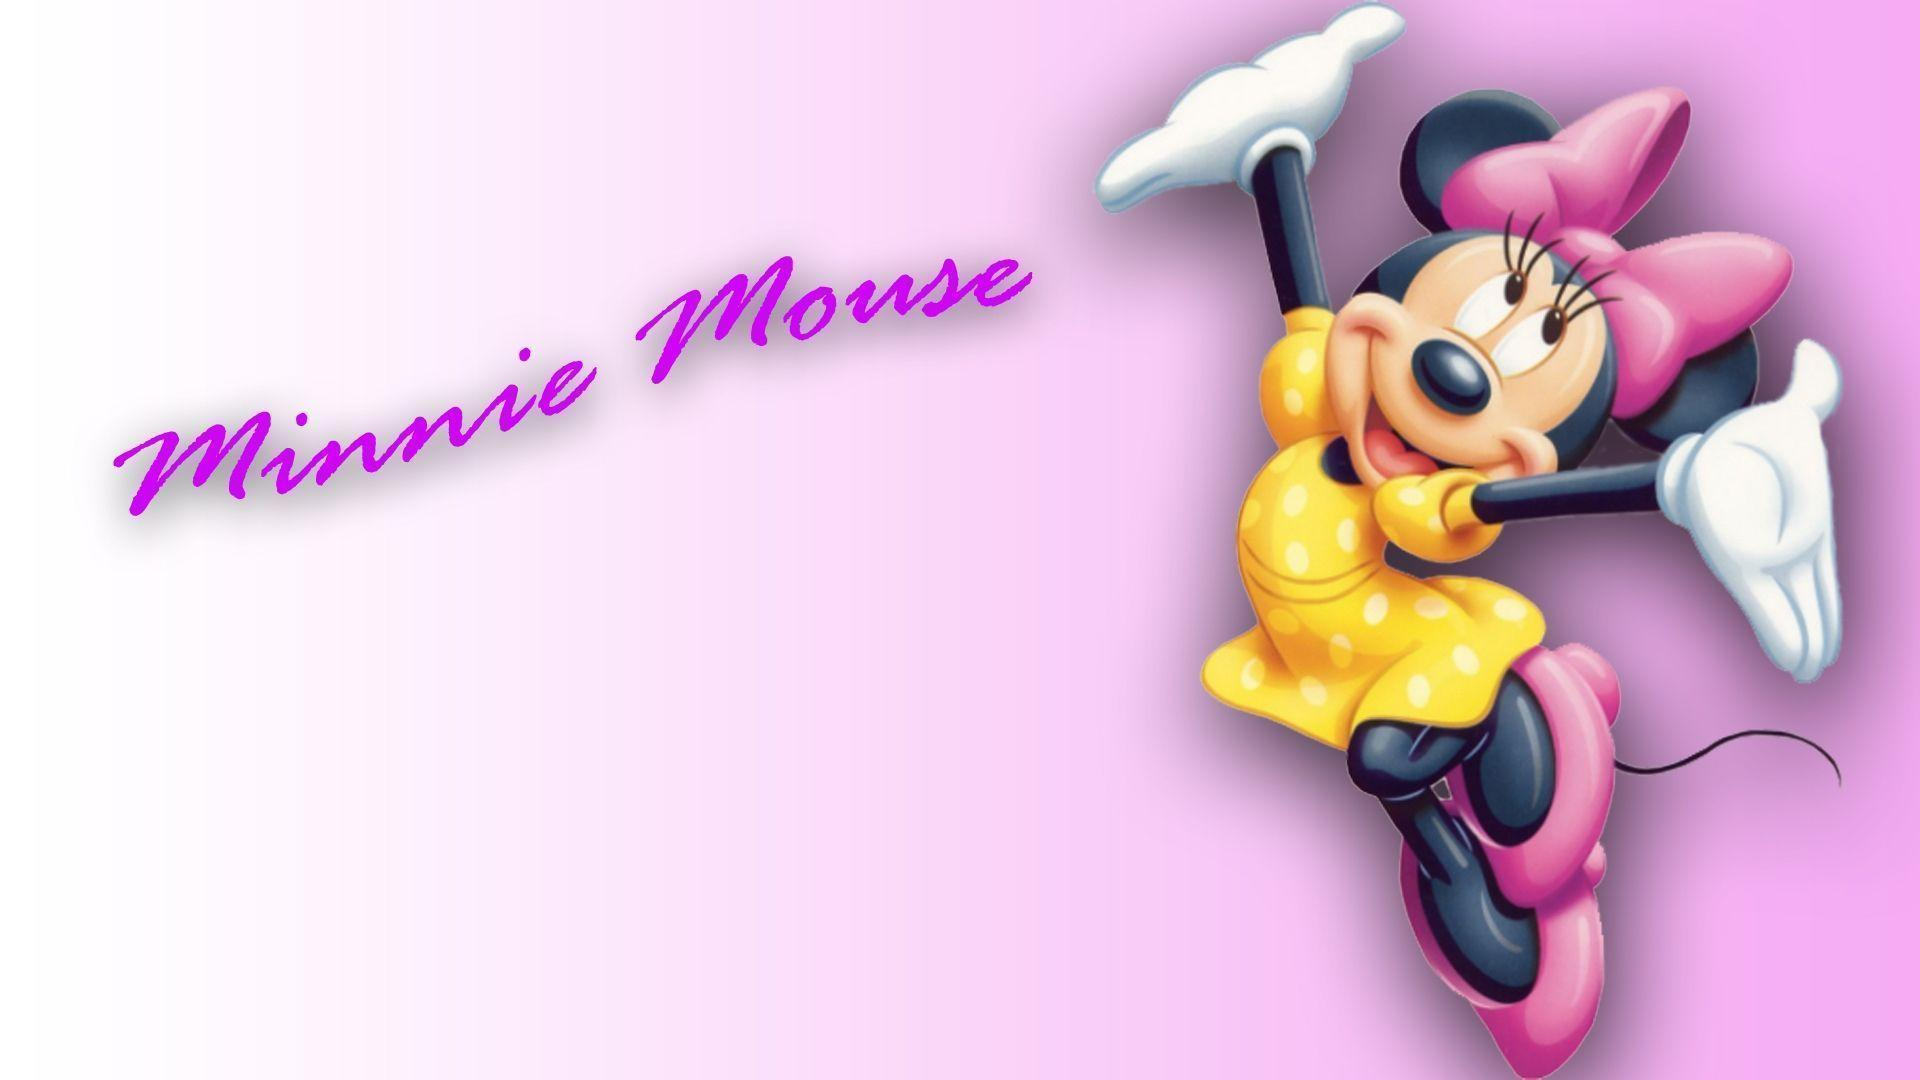 minnie mouse wallpapers wallpaper cave. Black Bedroom Furniture Sets. Home Design Ideas